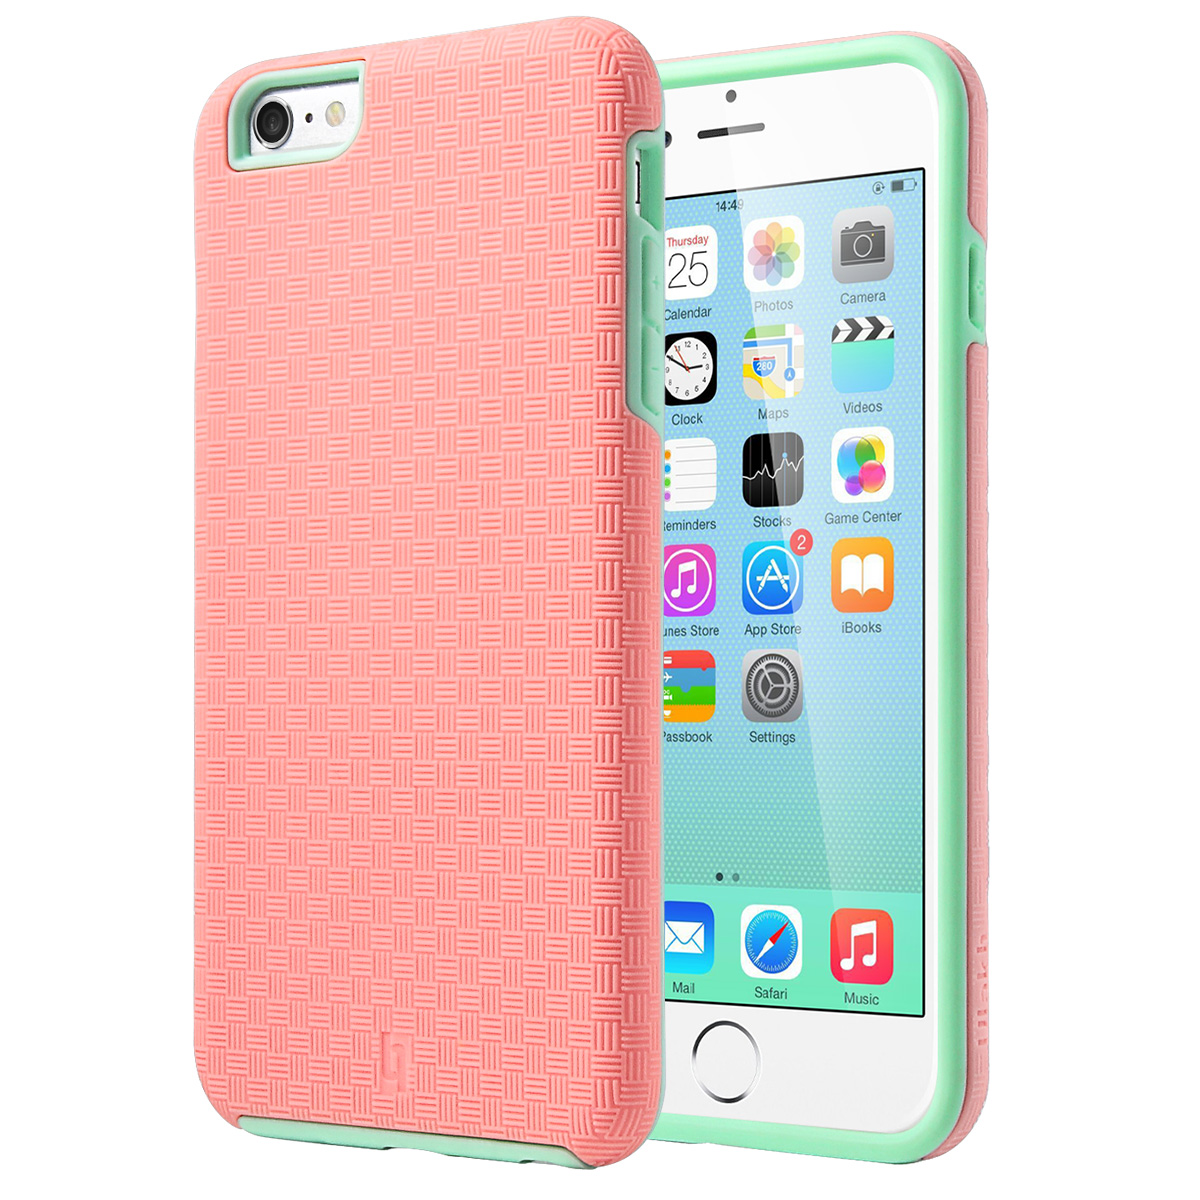 iPhone 6s Plus Case, iPhone 6 Plus Case, ULAK Slim Protective Shock Absorbent TPU Bumper Hard Cover for Apple iPhone 6 Plus /6s Plus 5.5'',Mint Green